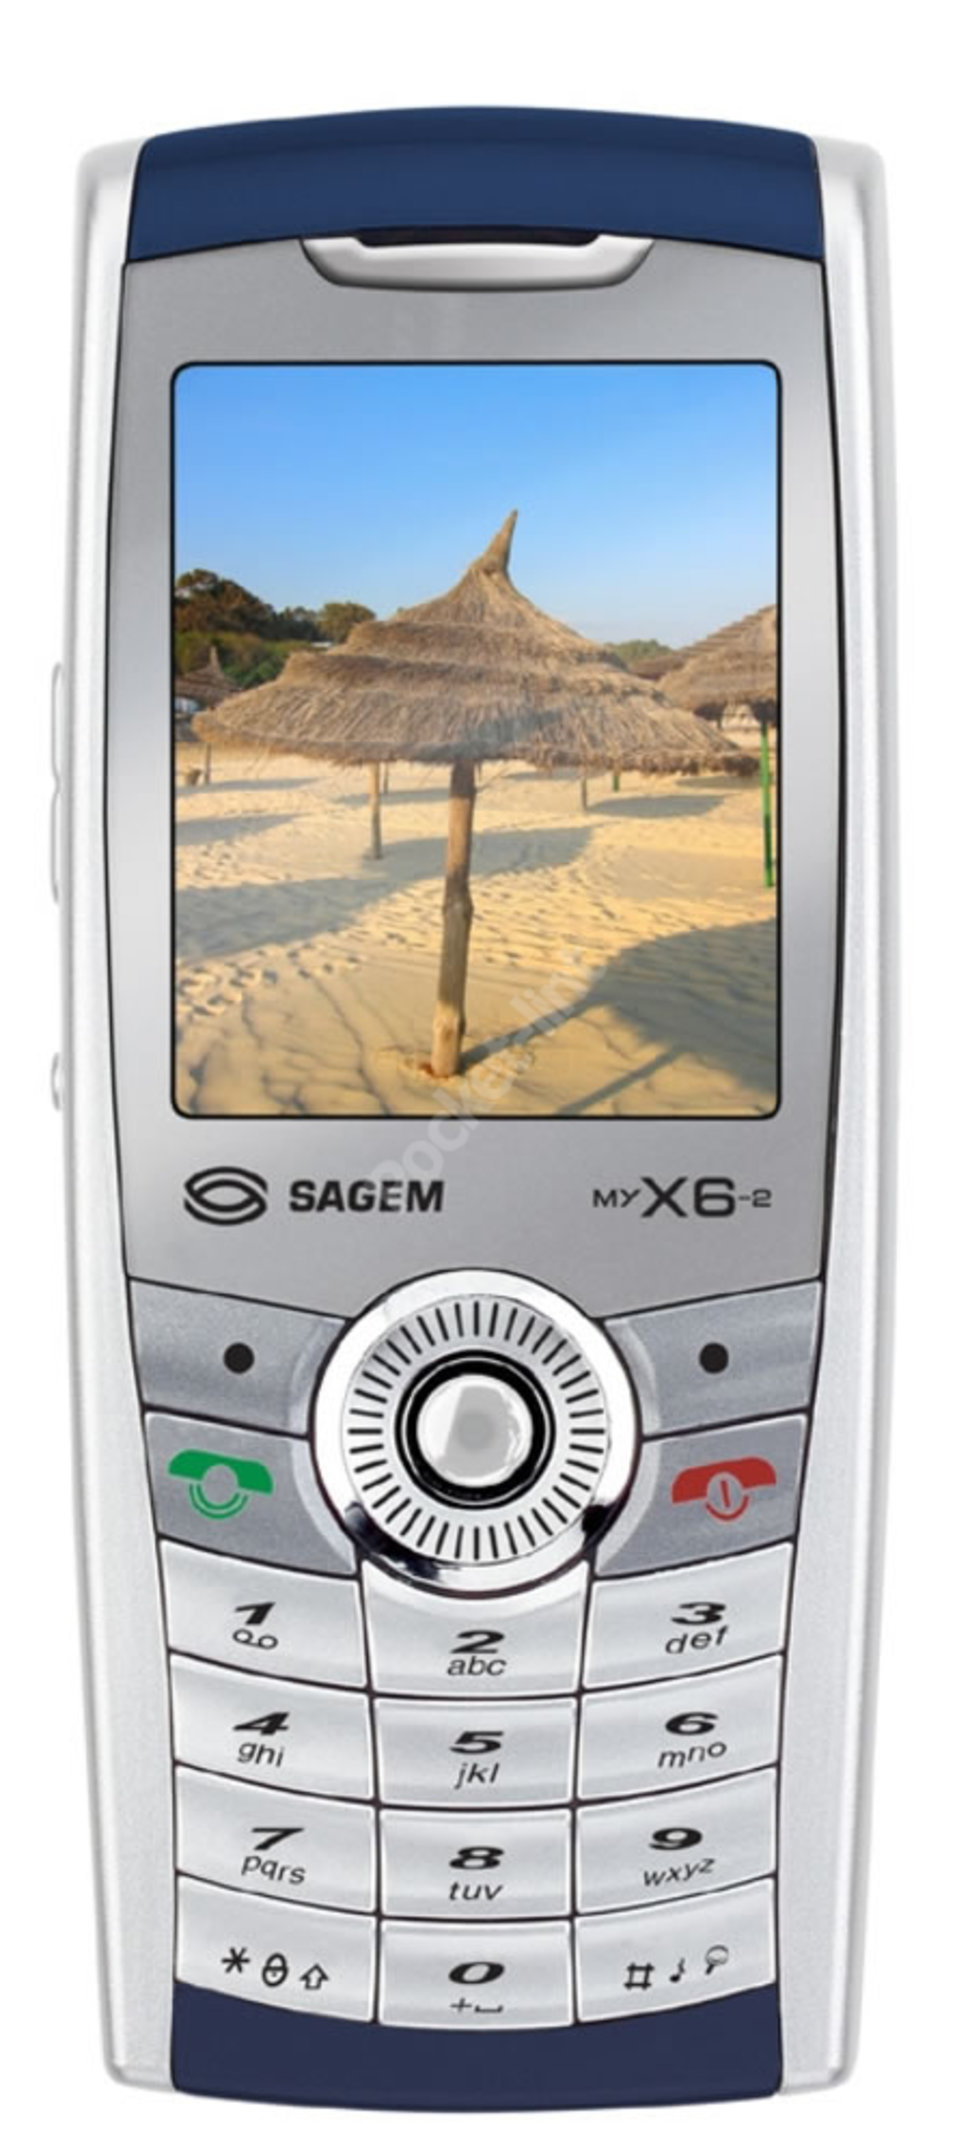 sagem my x6 2 mobile phone image 1